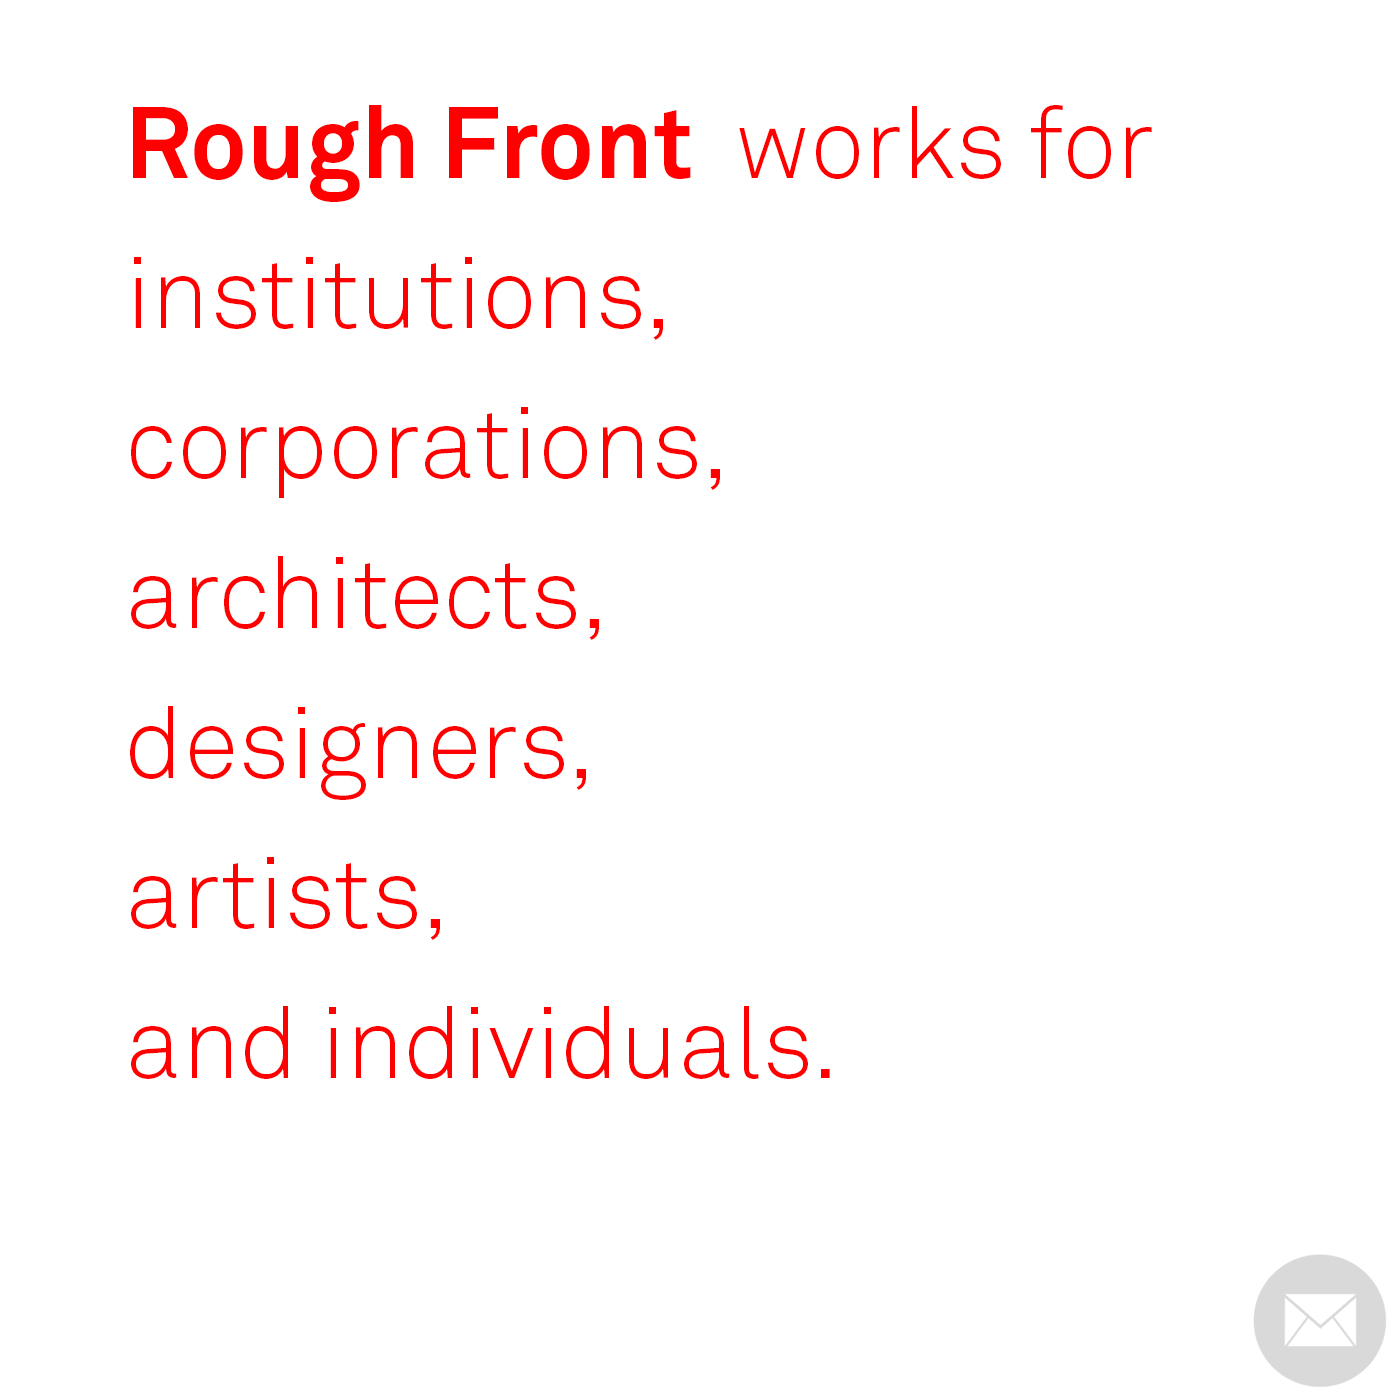 Rough Front is -envelope- 016.jpg